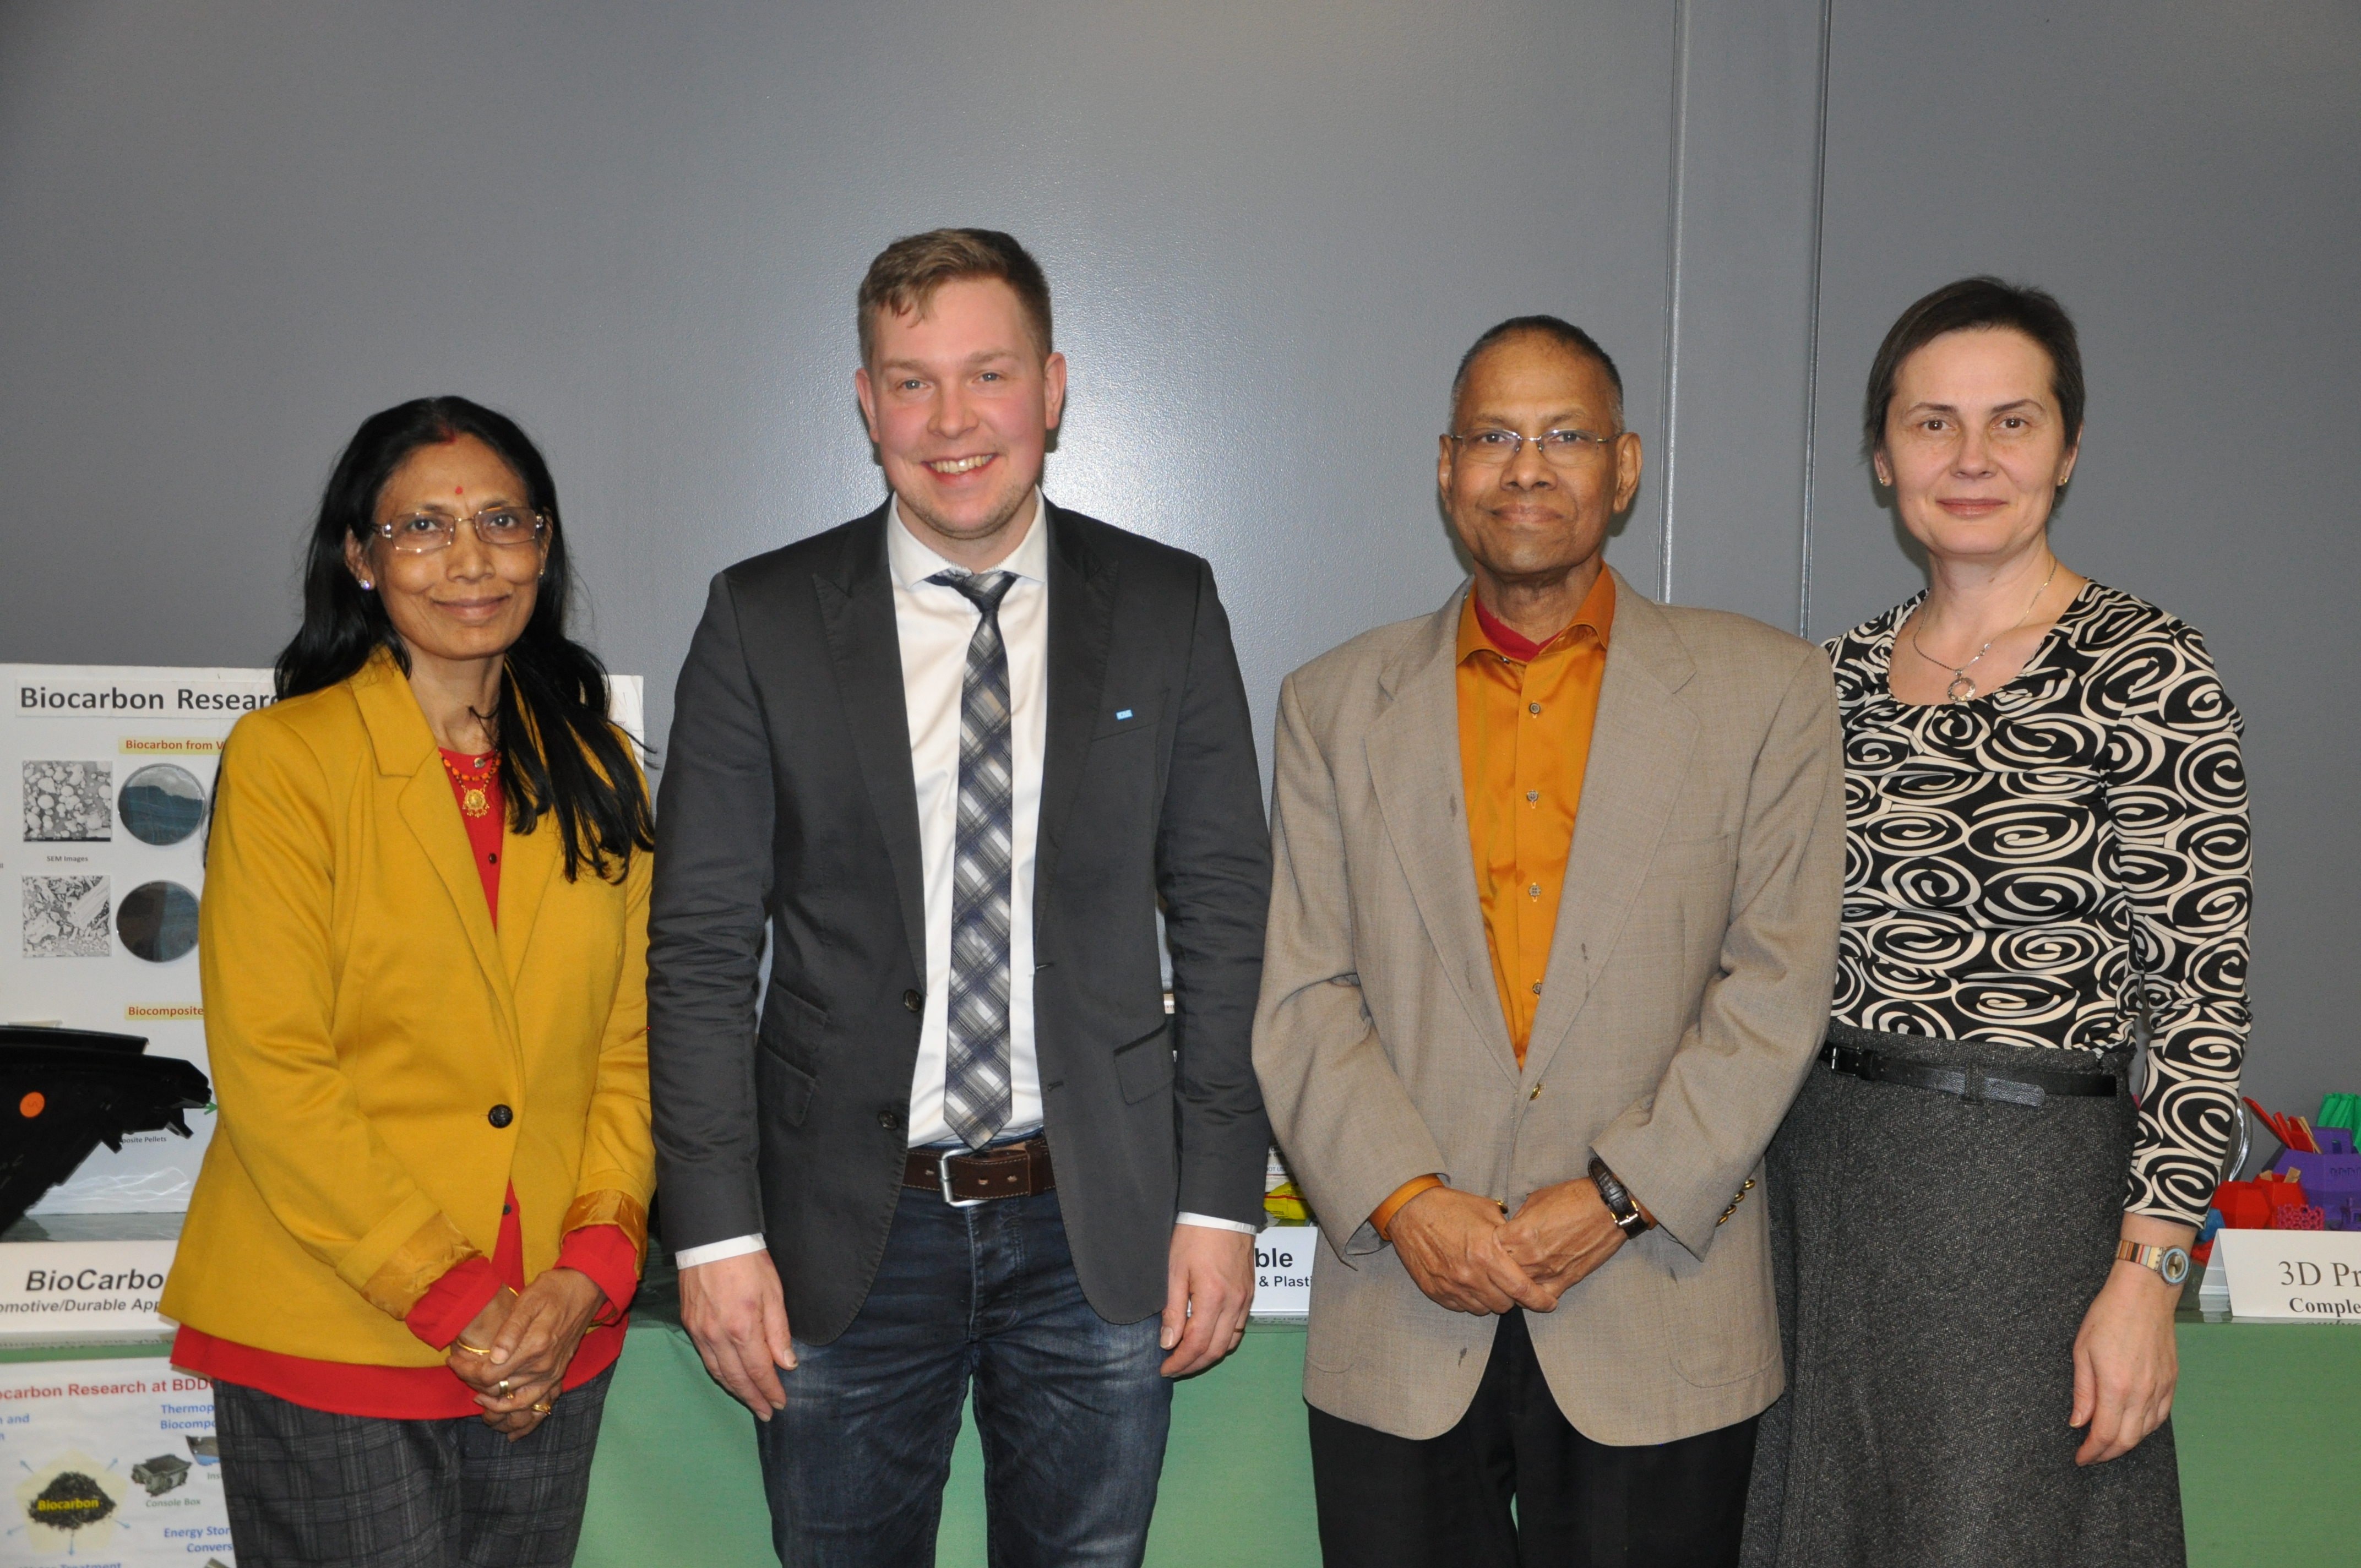 Picture of Professor's Misra, and Mohanty, with Milka Popov and professor Mikko Kannerva